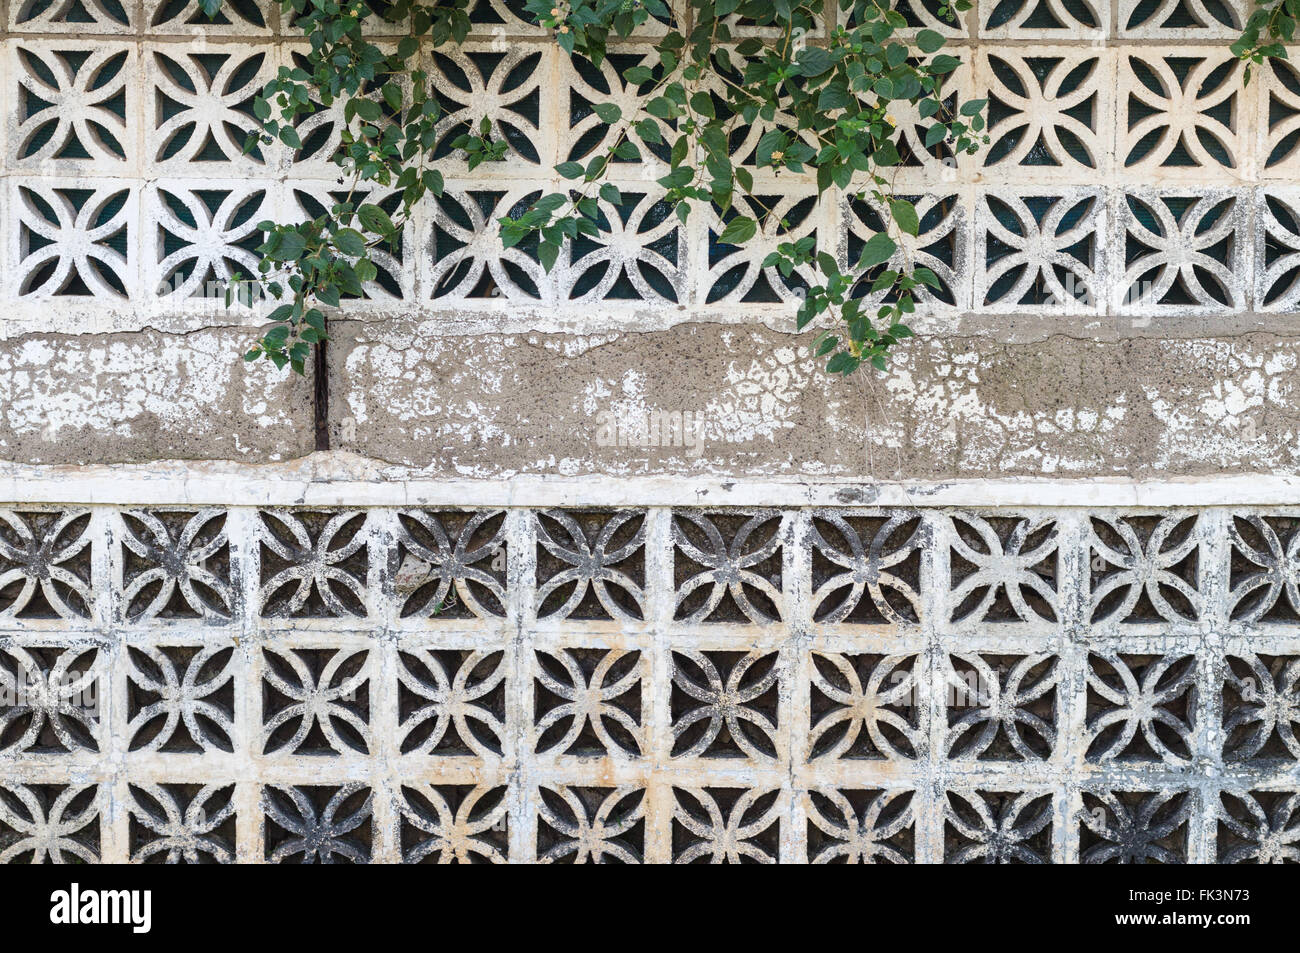 Decorative concrete blocks wall with creeping plants background ...